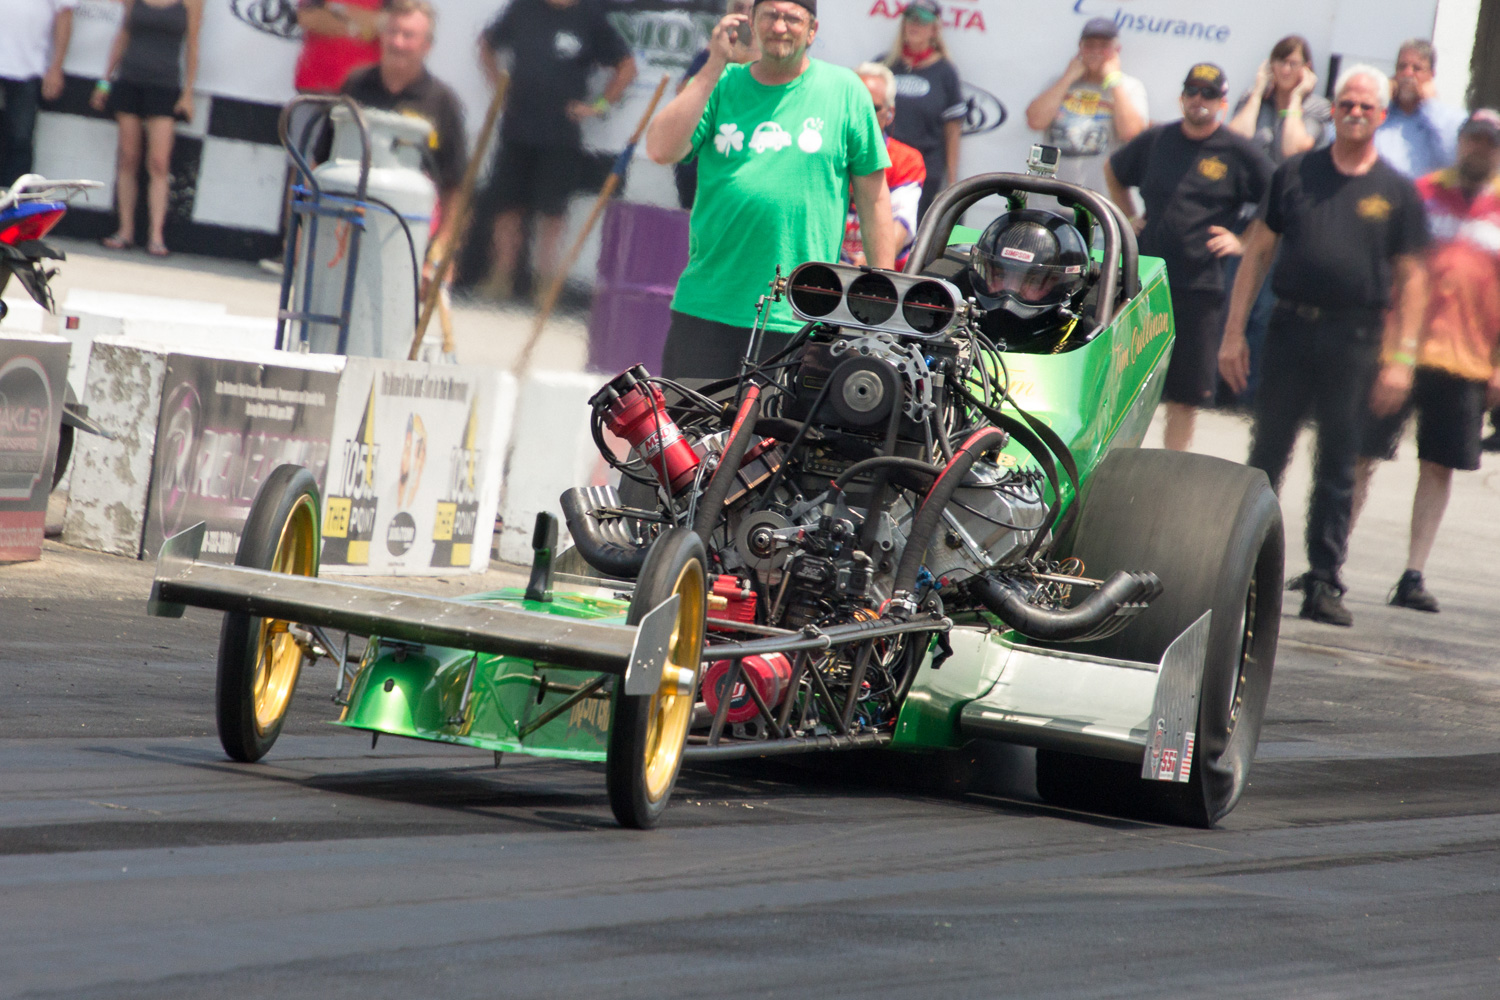 Chicago's own Turbo Tim Cullinan lights the fuse on his Irish Bomb dragster.